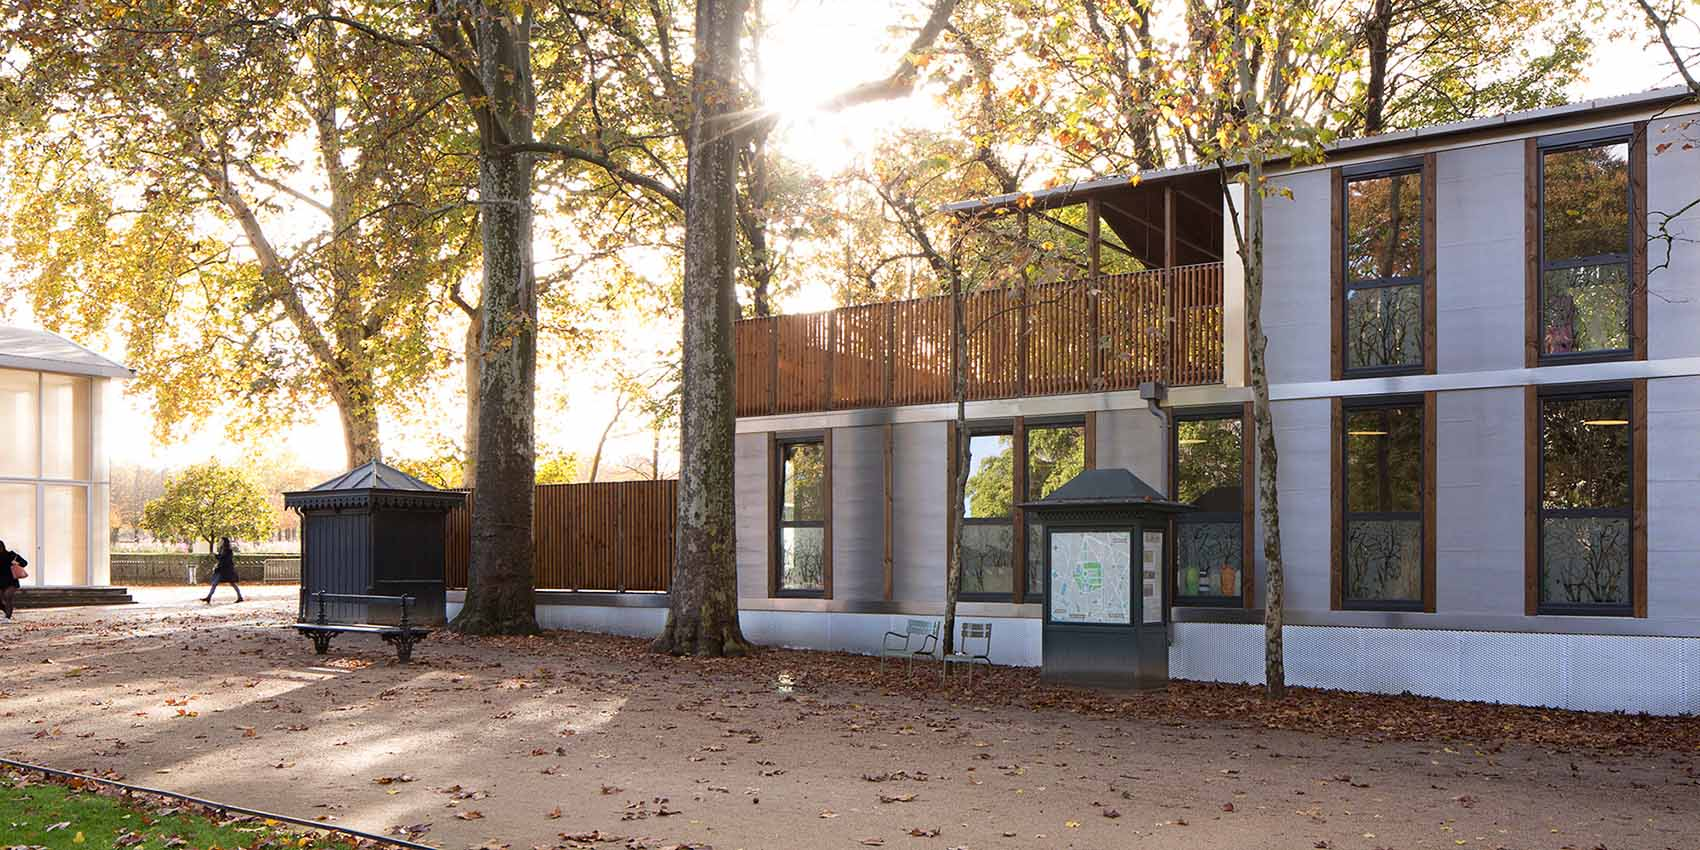 A dismountable, movable, and rebuildable wooden school